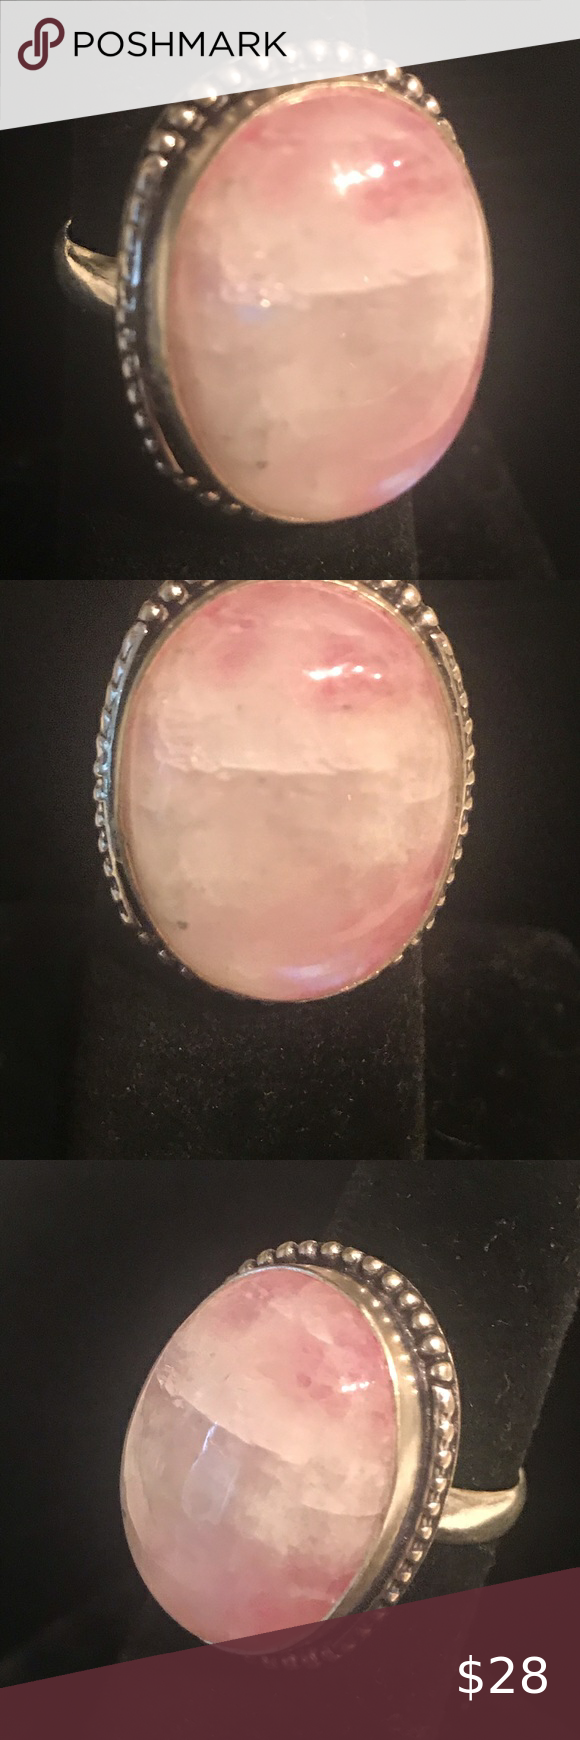 Pink Moonstone Ring This is a new handmade natural stone ring that is 925 Sterling silver stamped Please visit Maddies Jewels group on Facebook to see our newest beautifu...